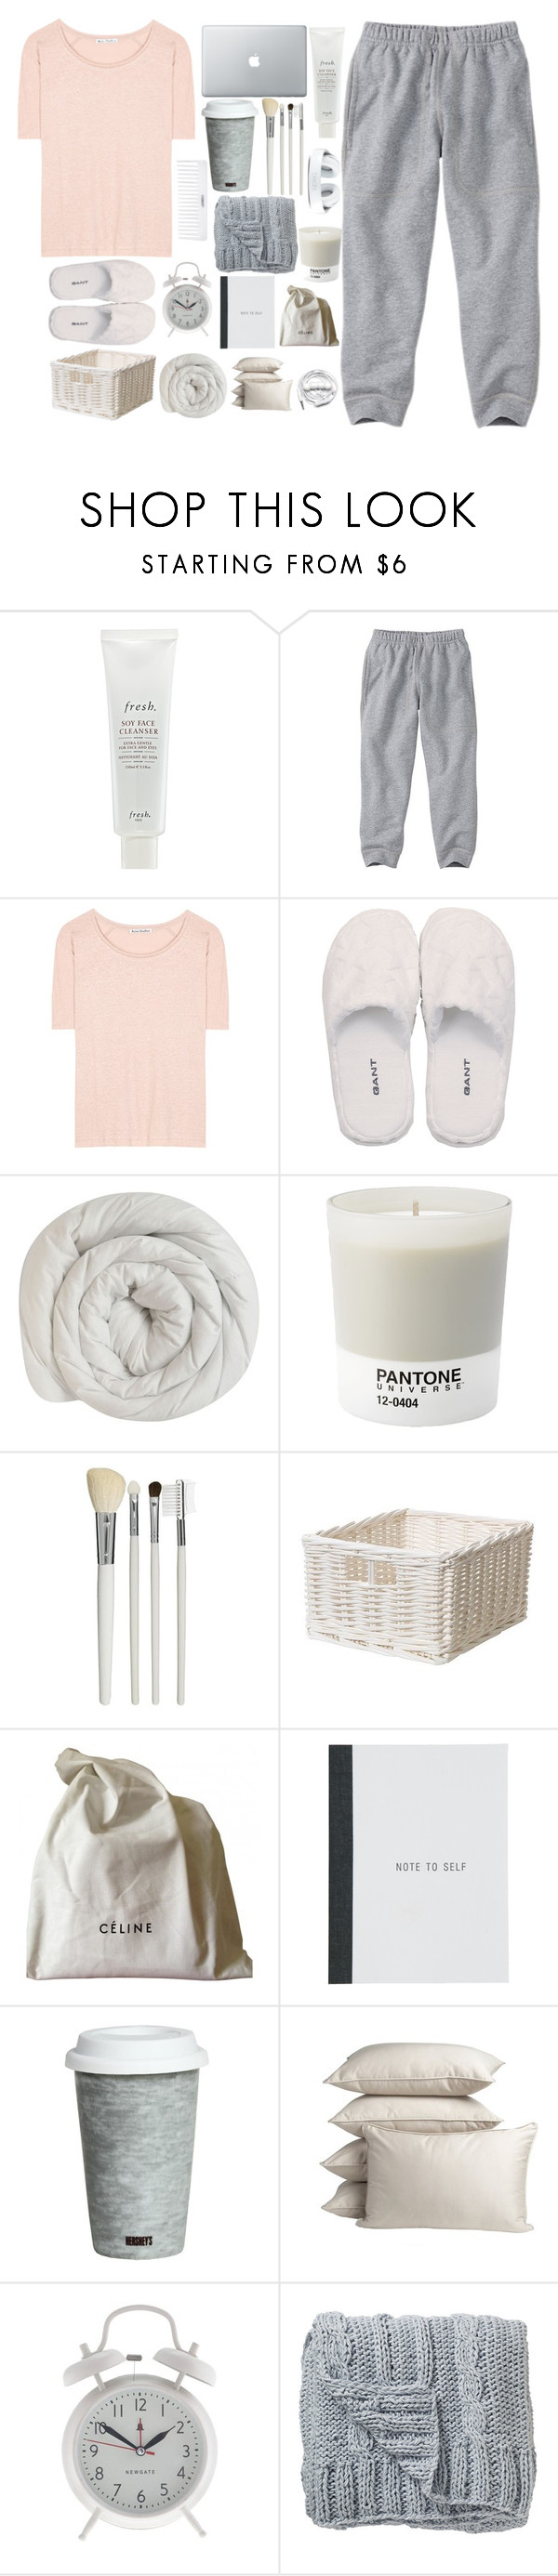 """""""Sleep with me anyways"""" by anam53046 ❤ liked on Polyvore featuring Fresh, Burt's Bees, Acne Studios, GANT, Pantone, Cath Kidston, CÉLINE, Fitz & Floyd, PBteen and J.Crew"""